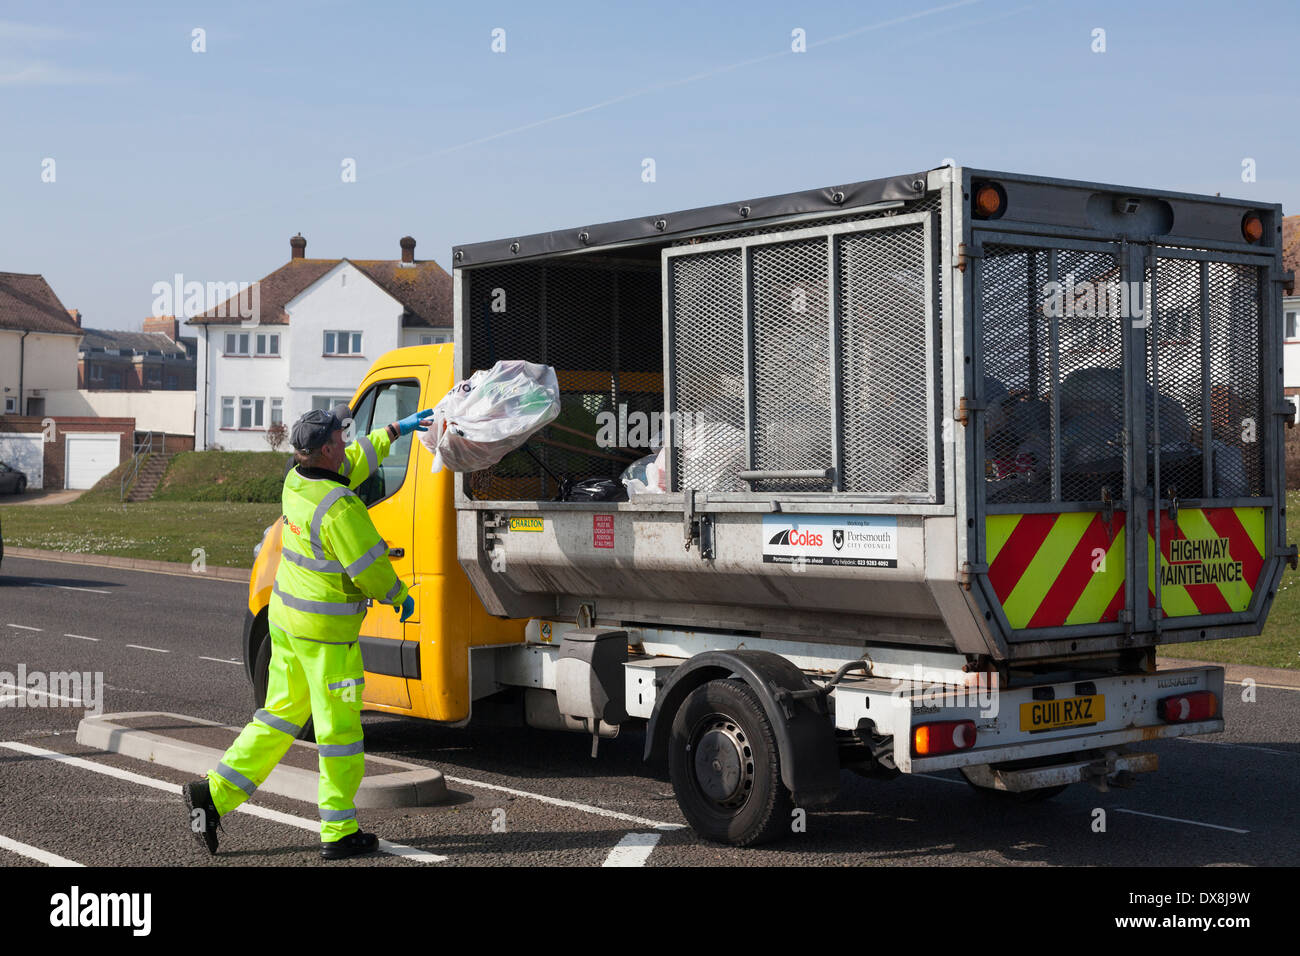 Council worker in high visibility clothing throwing rubbish into small refuse collection truck. - Stock Image